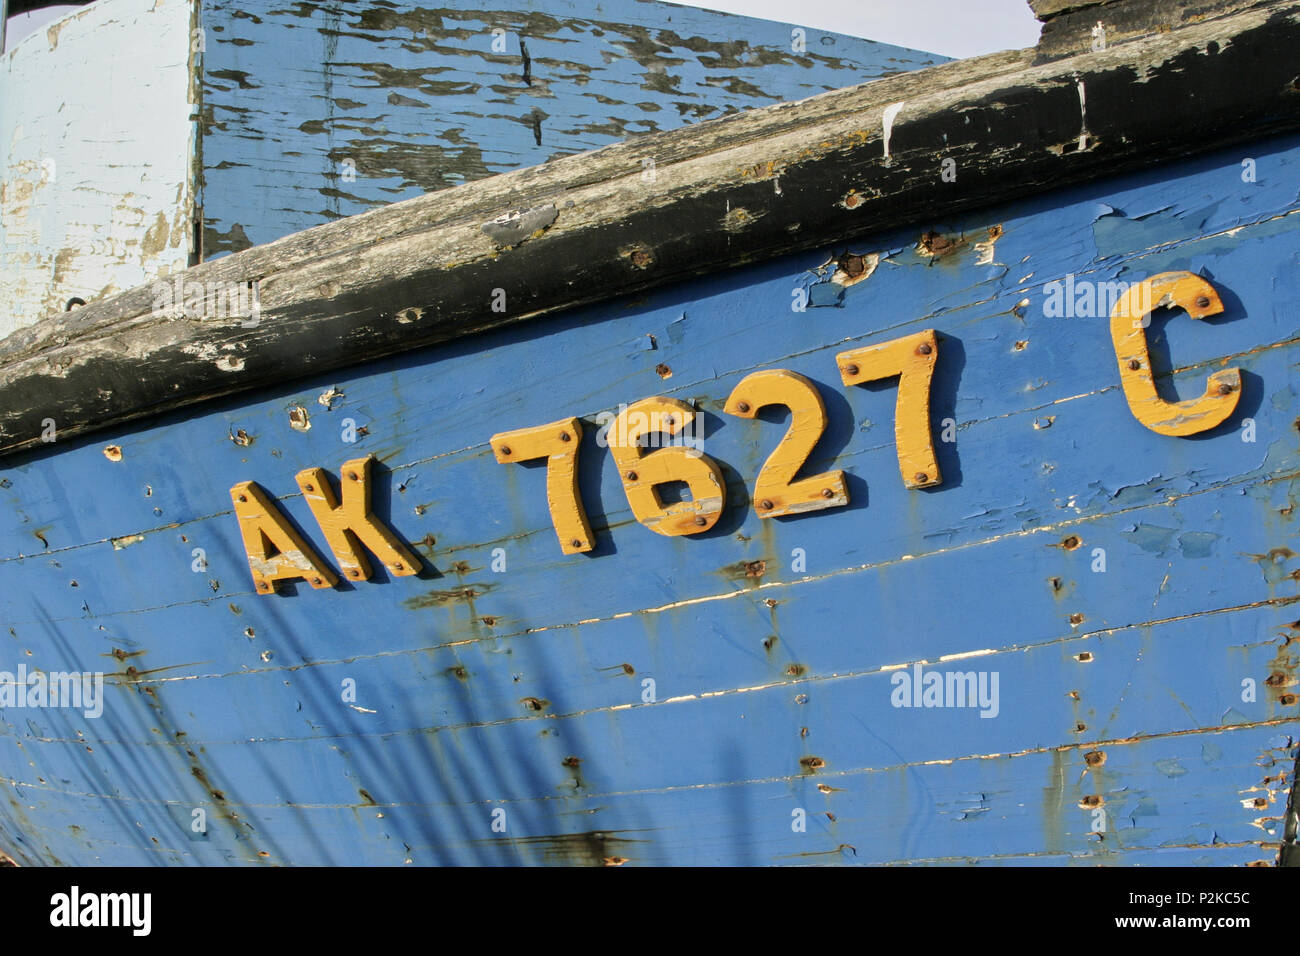 Old weathered wooden fishing boat with yellow registration letters ...